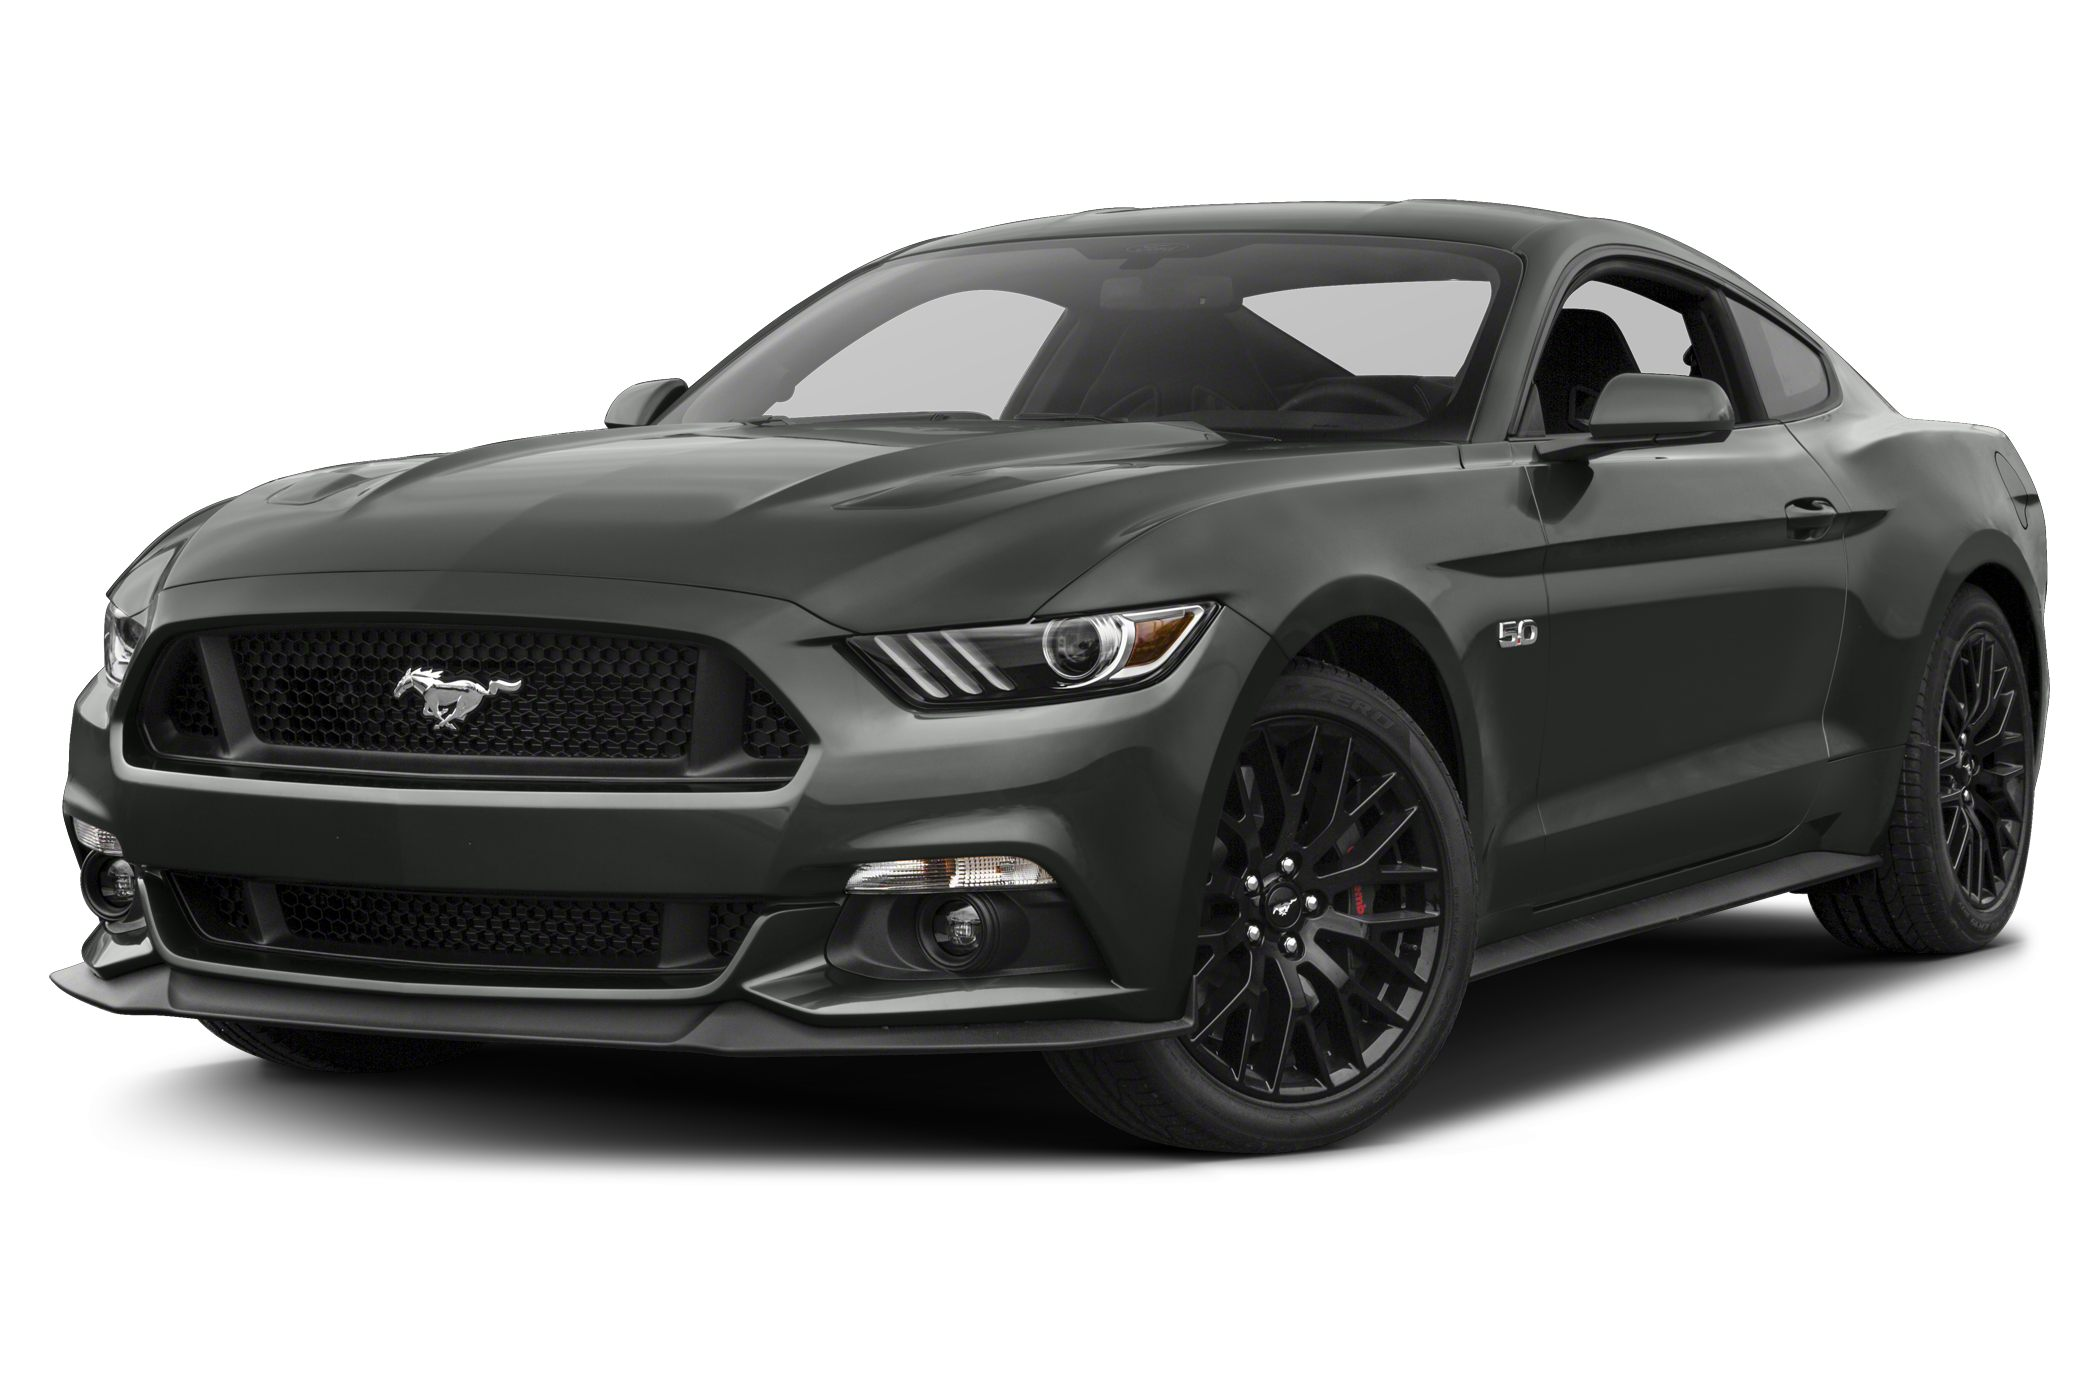 2015 Ford Mustang EcoBoost Premium Coupe for sale in Louisville for $30,598 with 0 miles